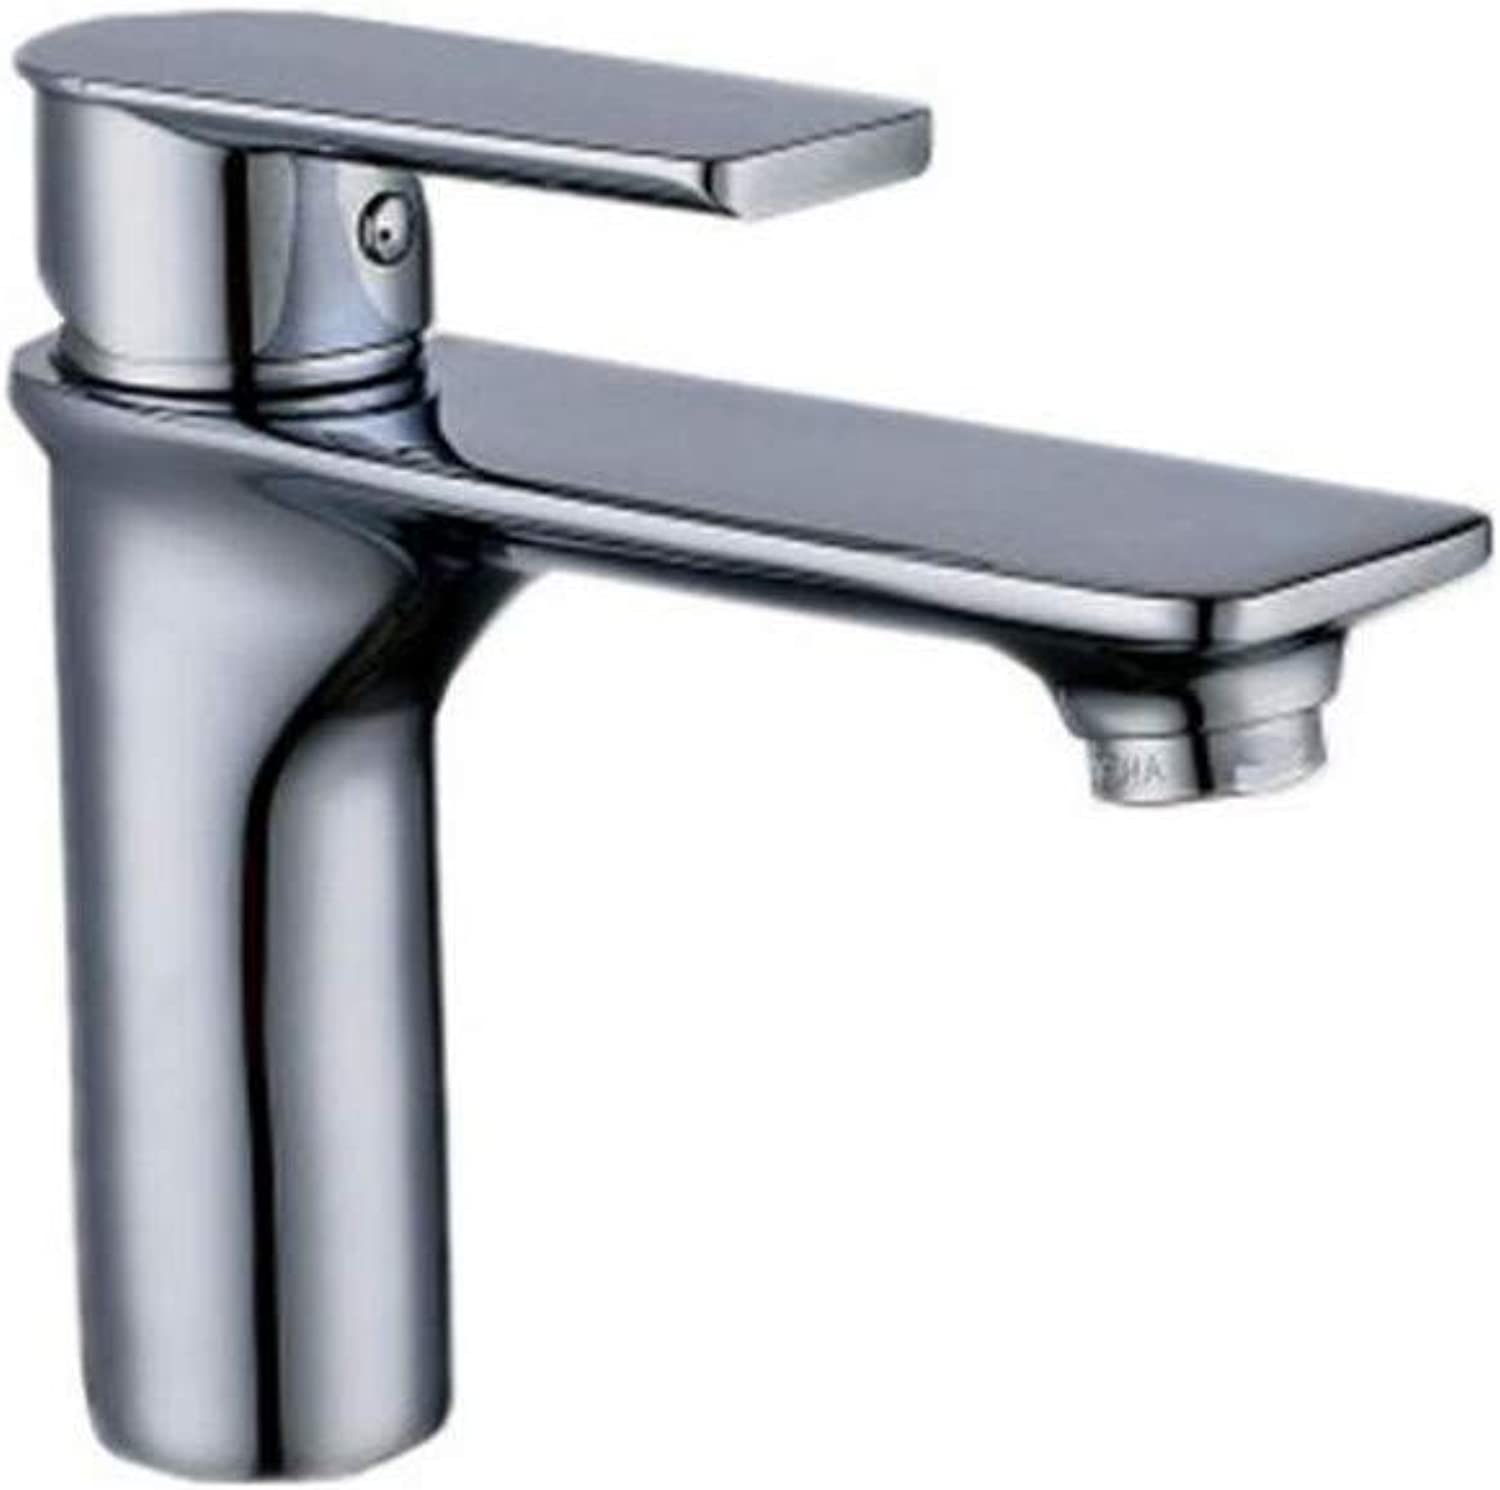 Taps Kitchen Sinksink Faucet Washbasin Hot and Cold Full Copper Pot Filling Faucet Bathroom Counter